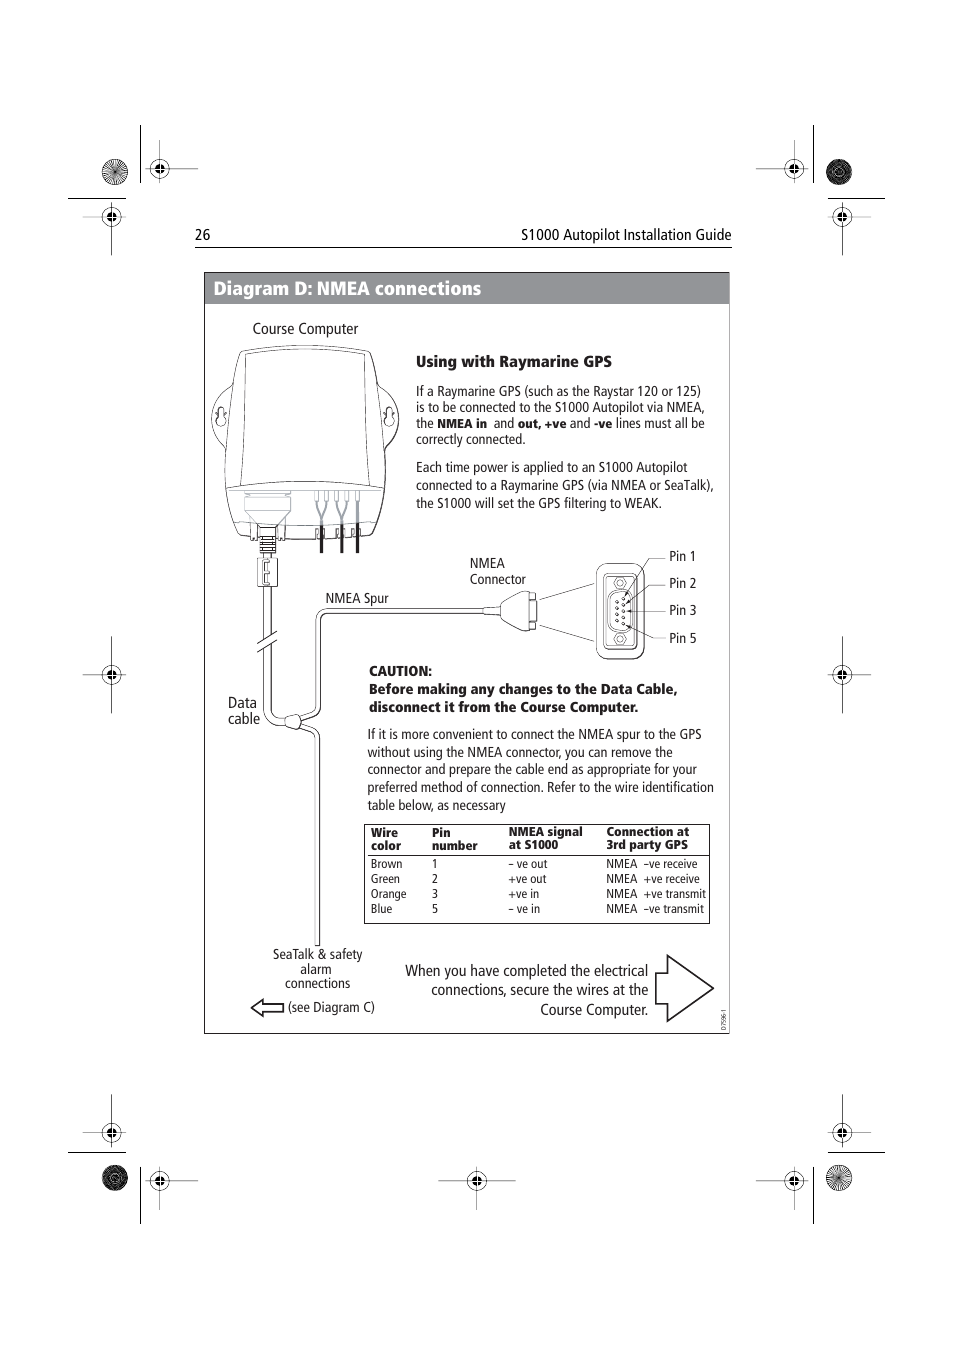 Raystar 125 Wiring Diagram 26 Images Nmea Gps 0183 Raymarine S1000 Page28 D Connections User Manual Page